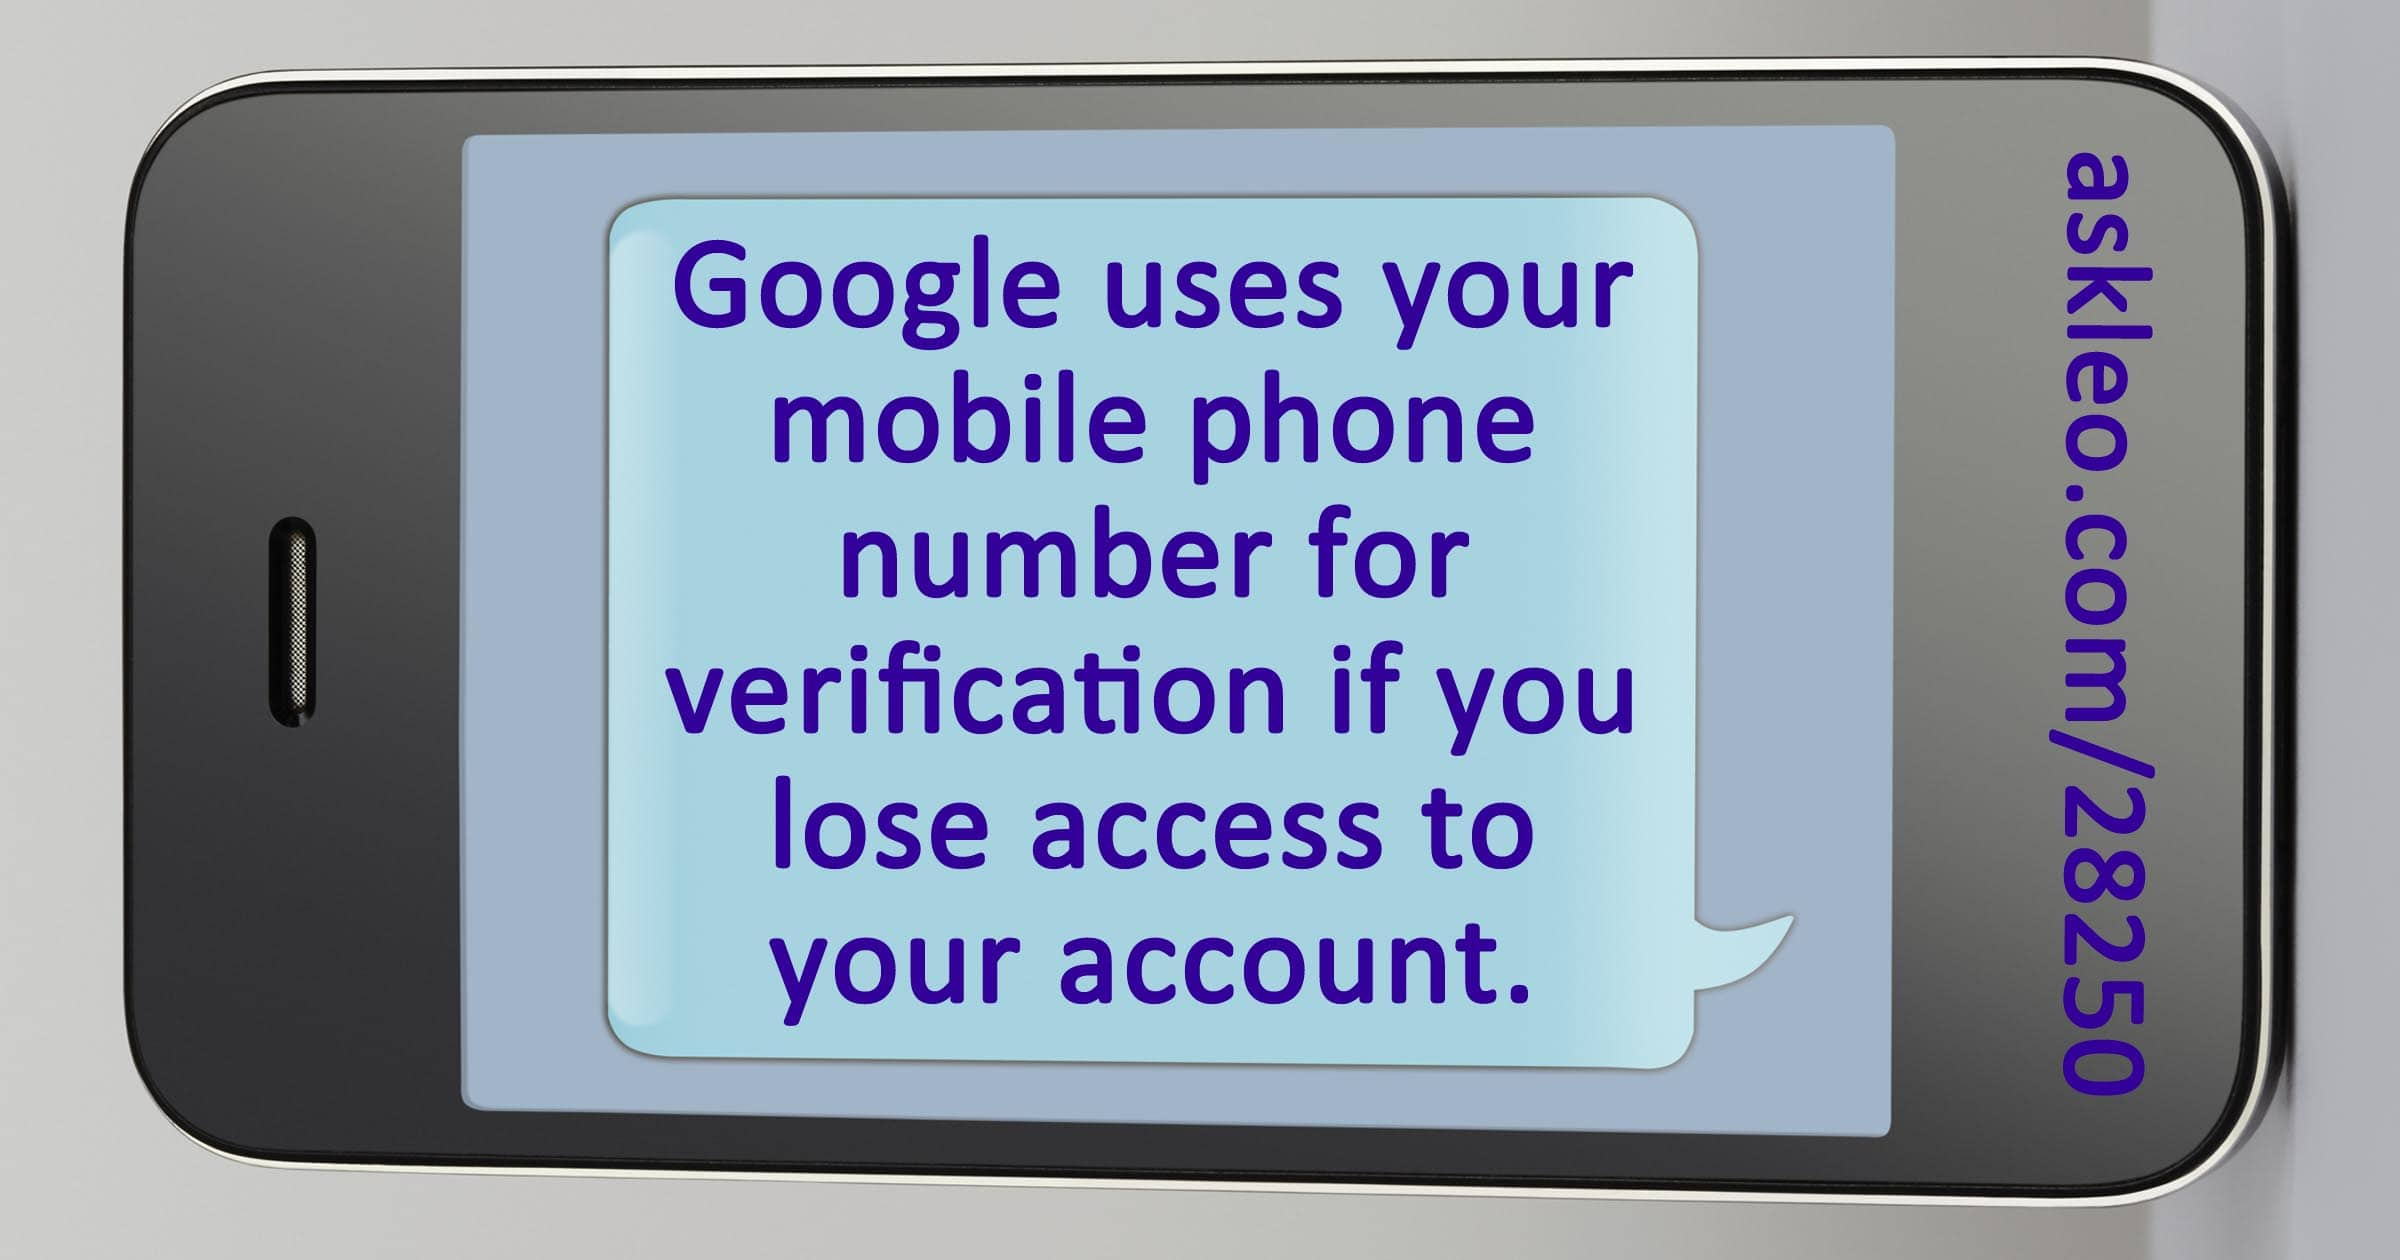 Yes, You Should Give Google Your Mobile Number